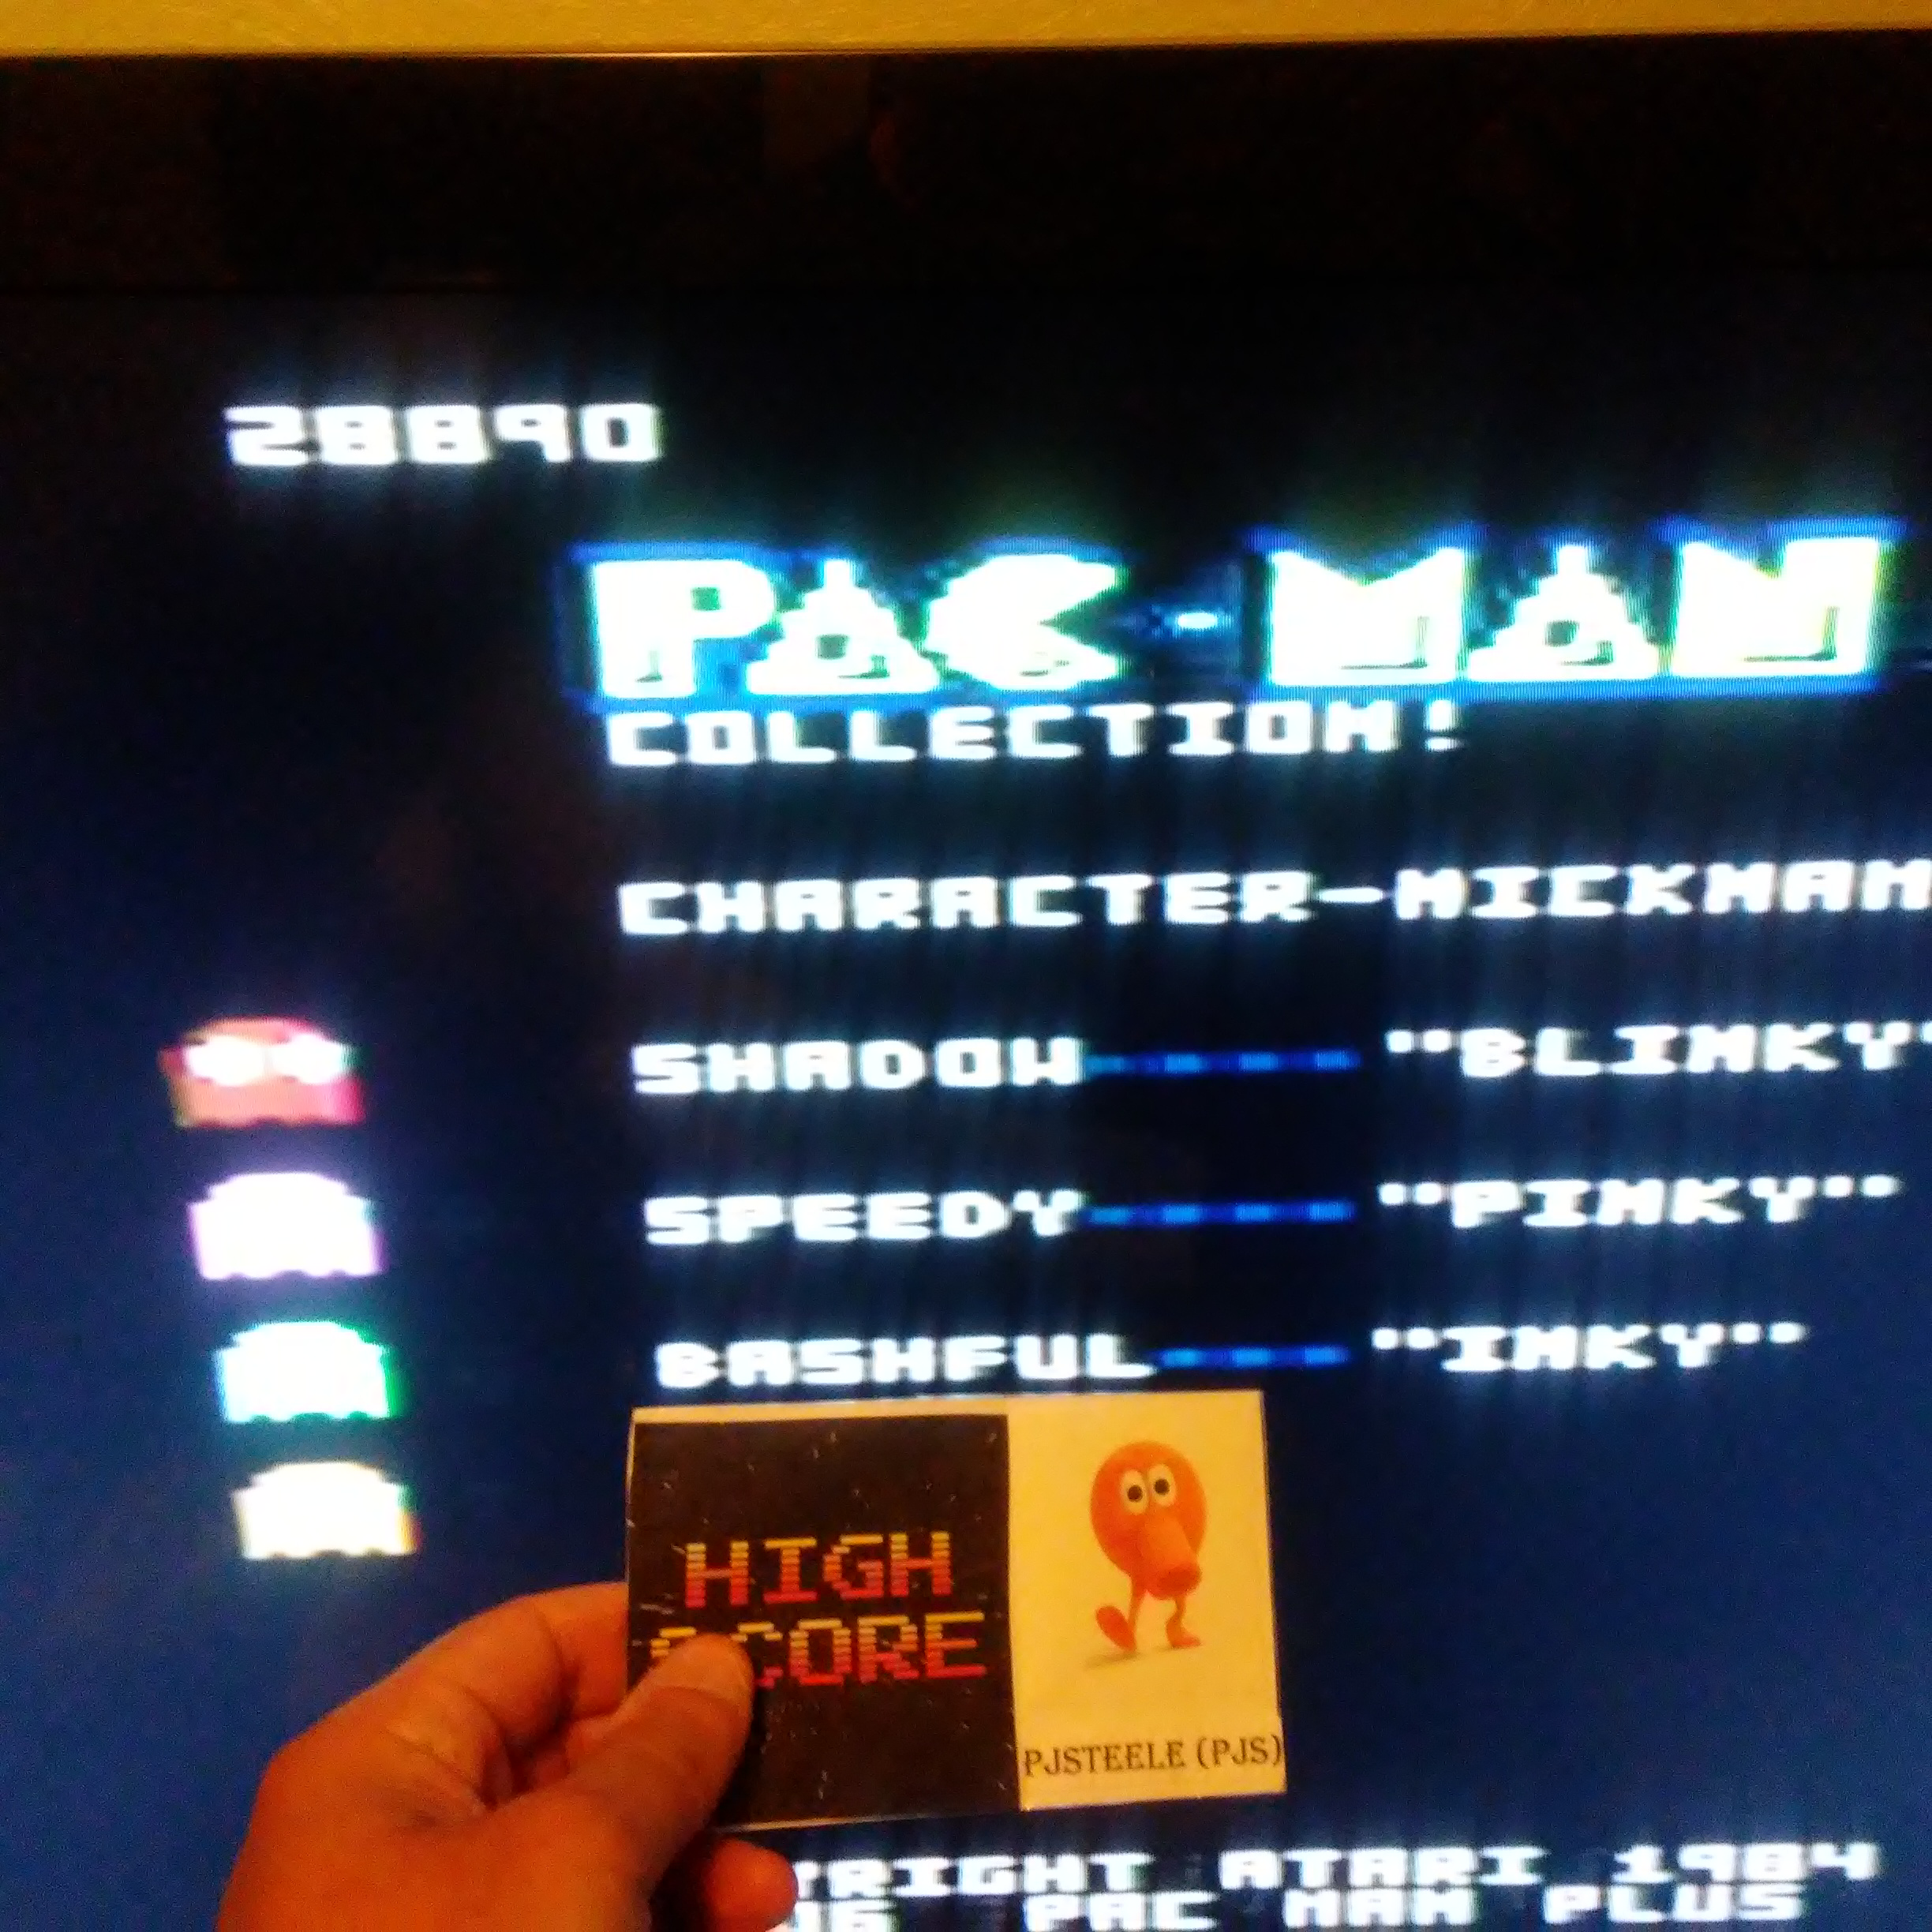 Pjsteele: Pac-Man Collection: Pac-Man [Cherries/Plus Off/Fast Off] (Atari 7800) 28,890 points on 2018-06-24 20:11:42